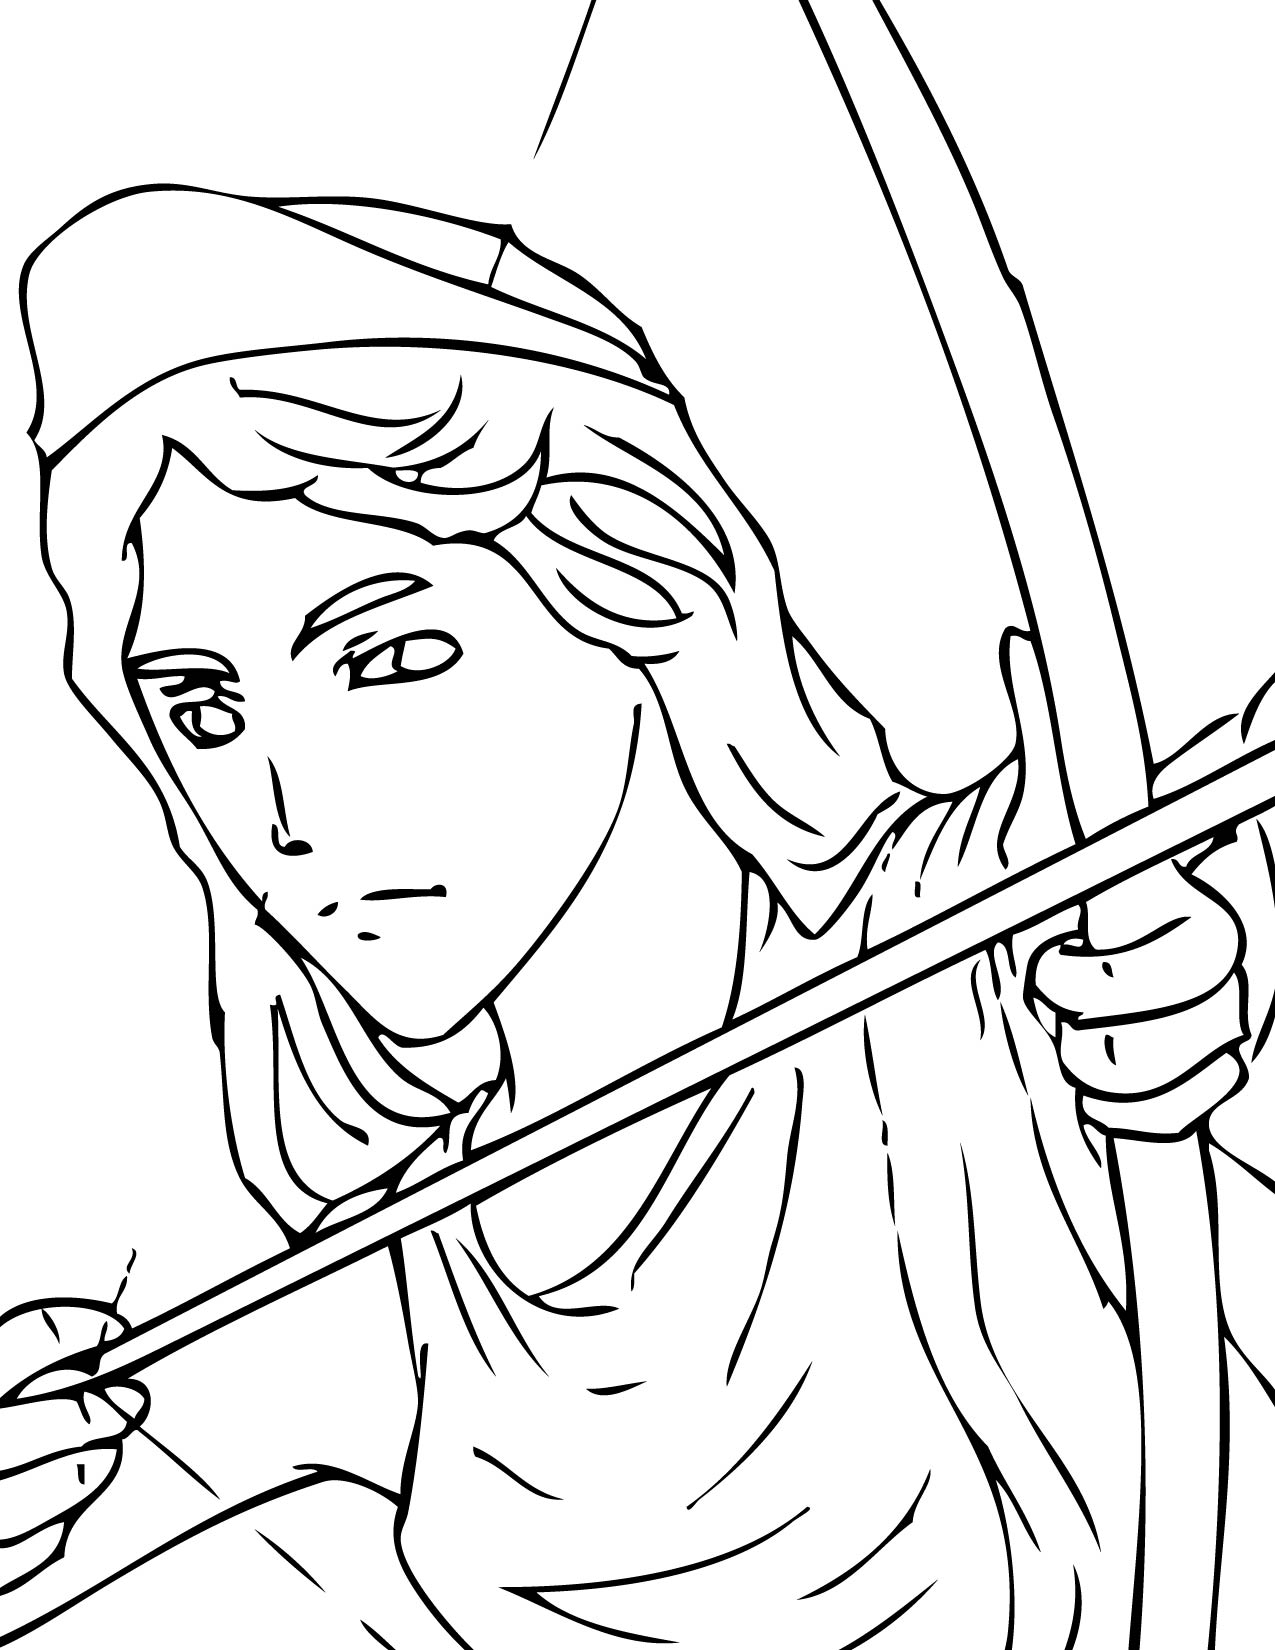 Greek Gods And Goddesses Coloring Pages At Getcolorings